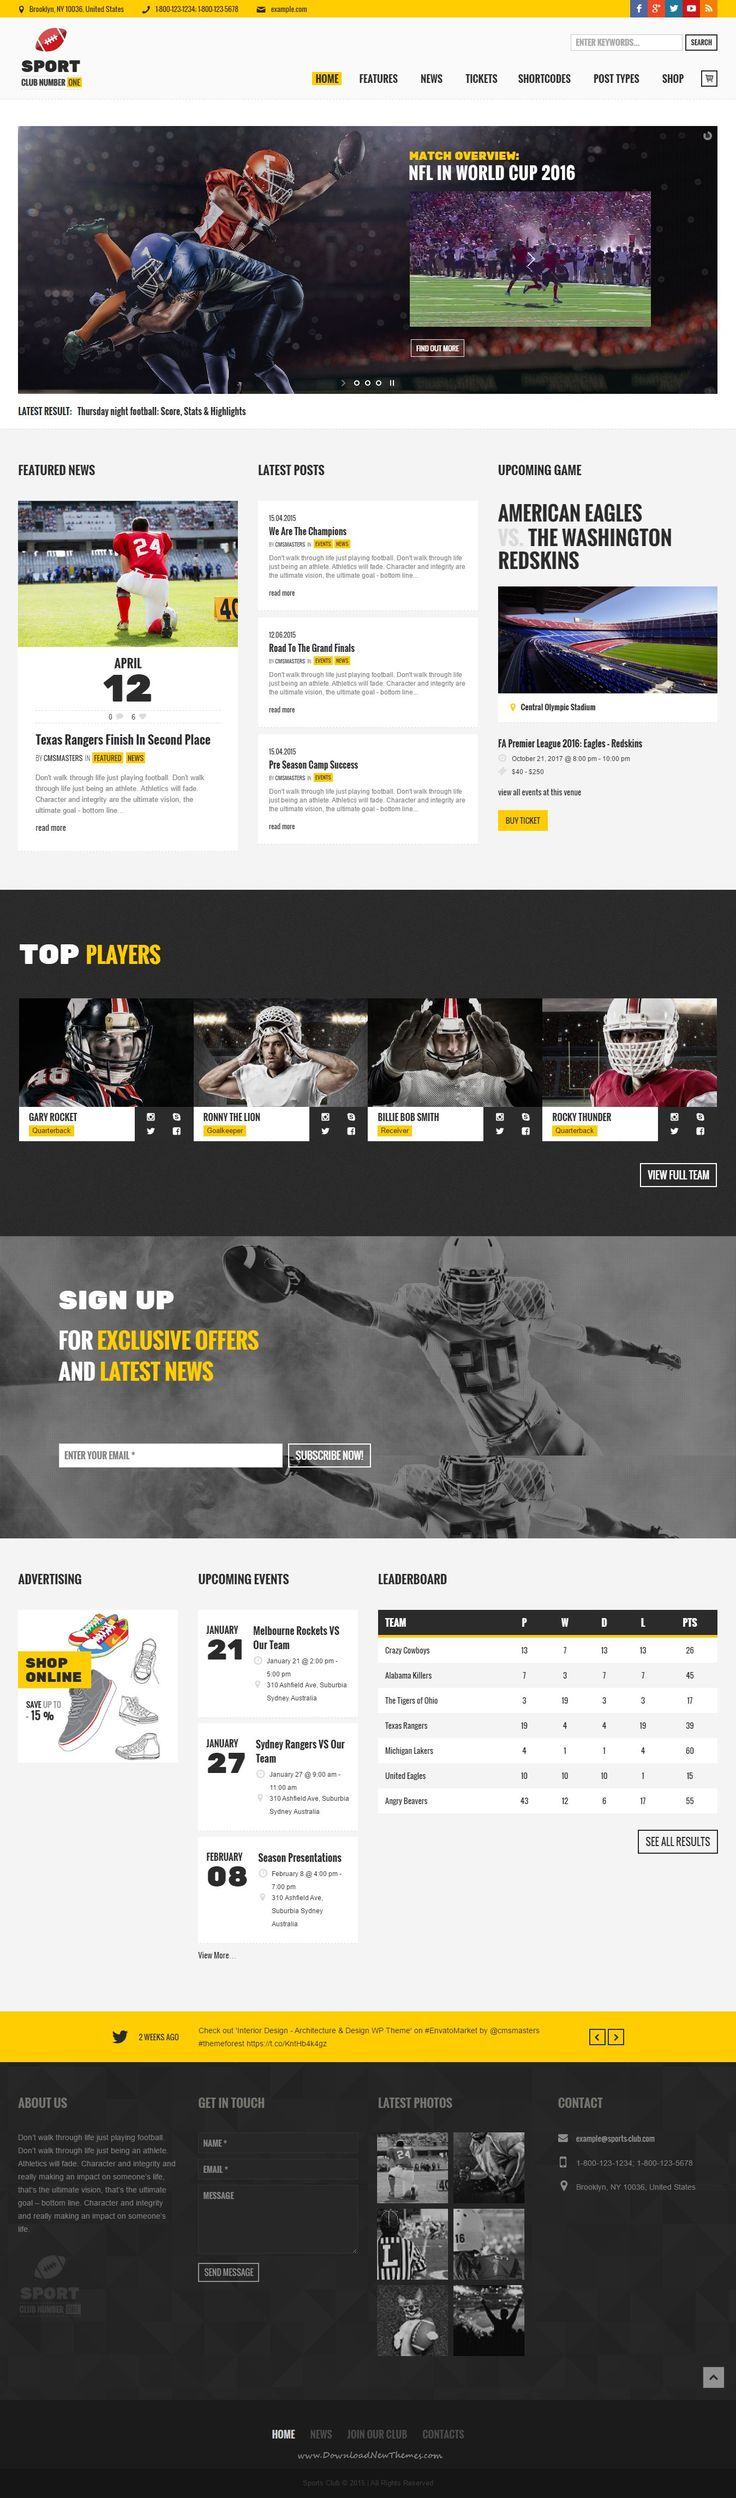 Sports Club #WordPress Theme is a best ever solution for a #sports #website, like a football, baseball or soccer team site, sports events and games, sport news online magazine, children's sports clubs and sections, etc.